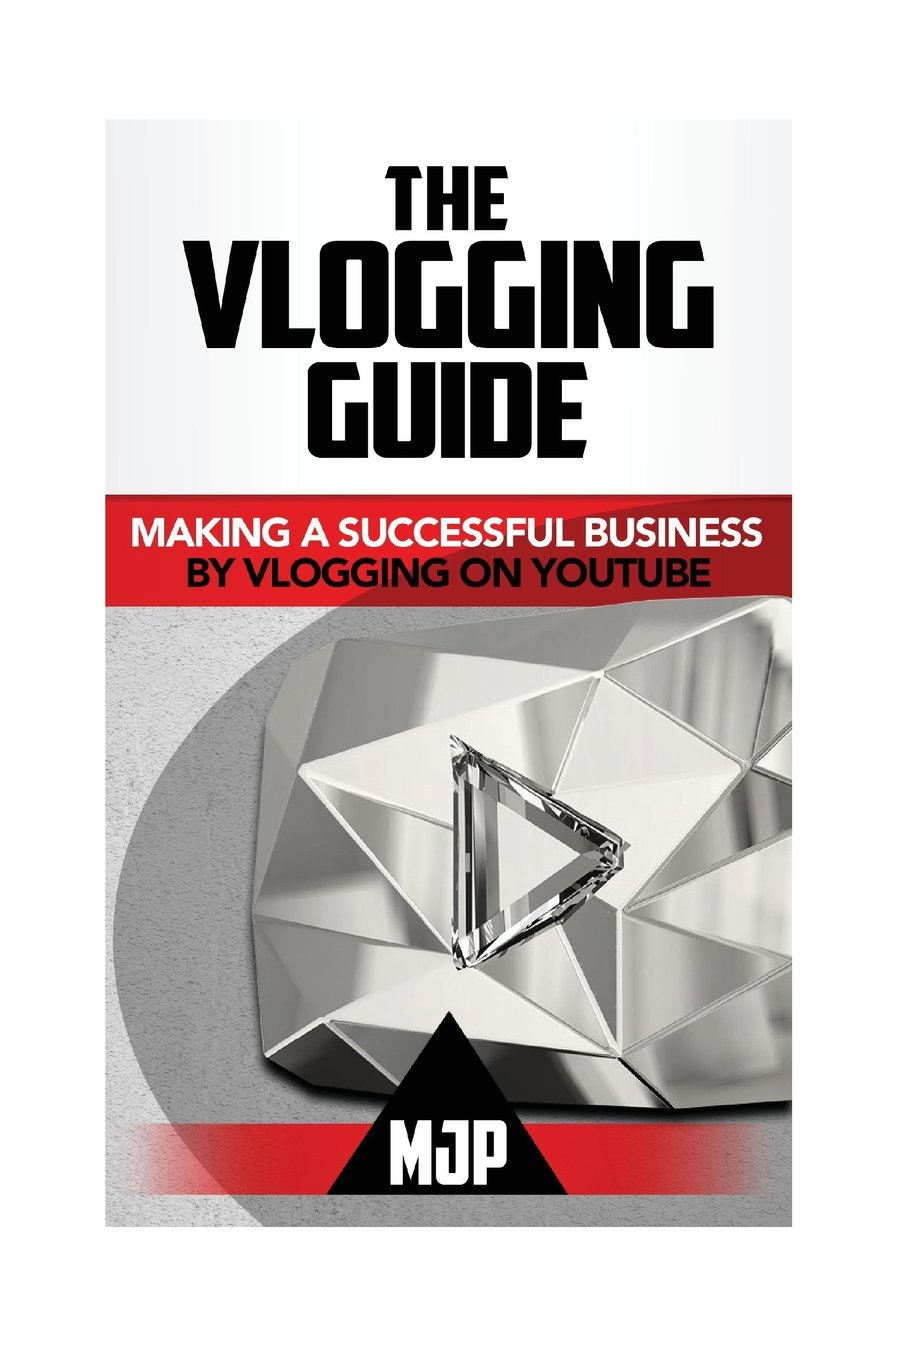 f64c0d0bf7f4 The Vlogging Guide  Making a Successful Business by Vlogging on YouTube  M  JP  9781537415505  Amazon.com  Books